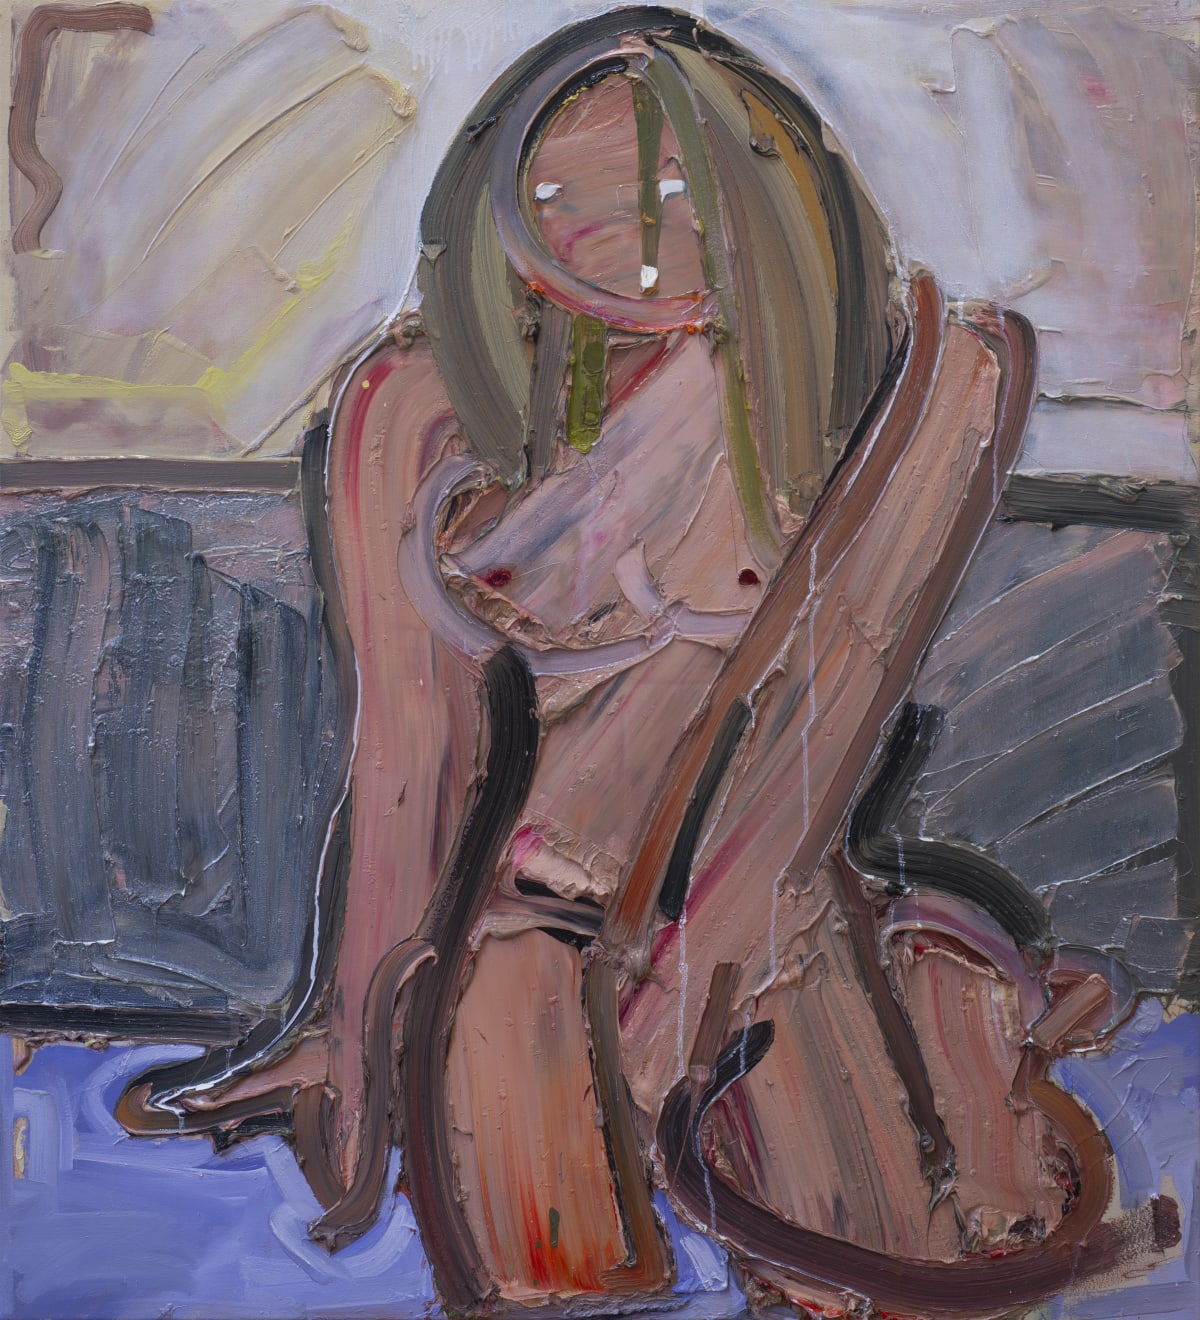 Toby Raine On the Floor II, 2019 Oil on canvas 1100 x 1000mm